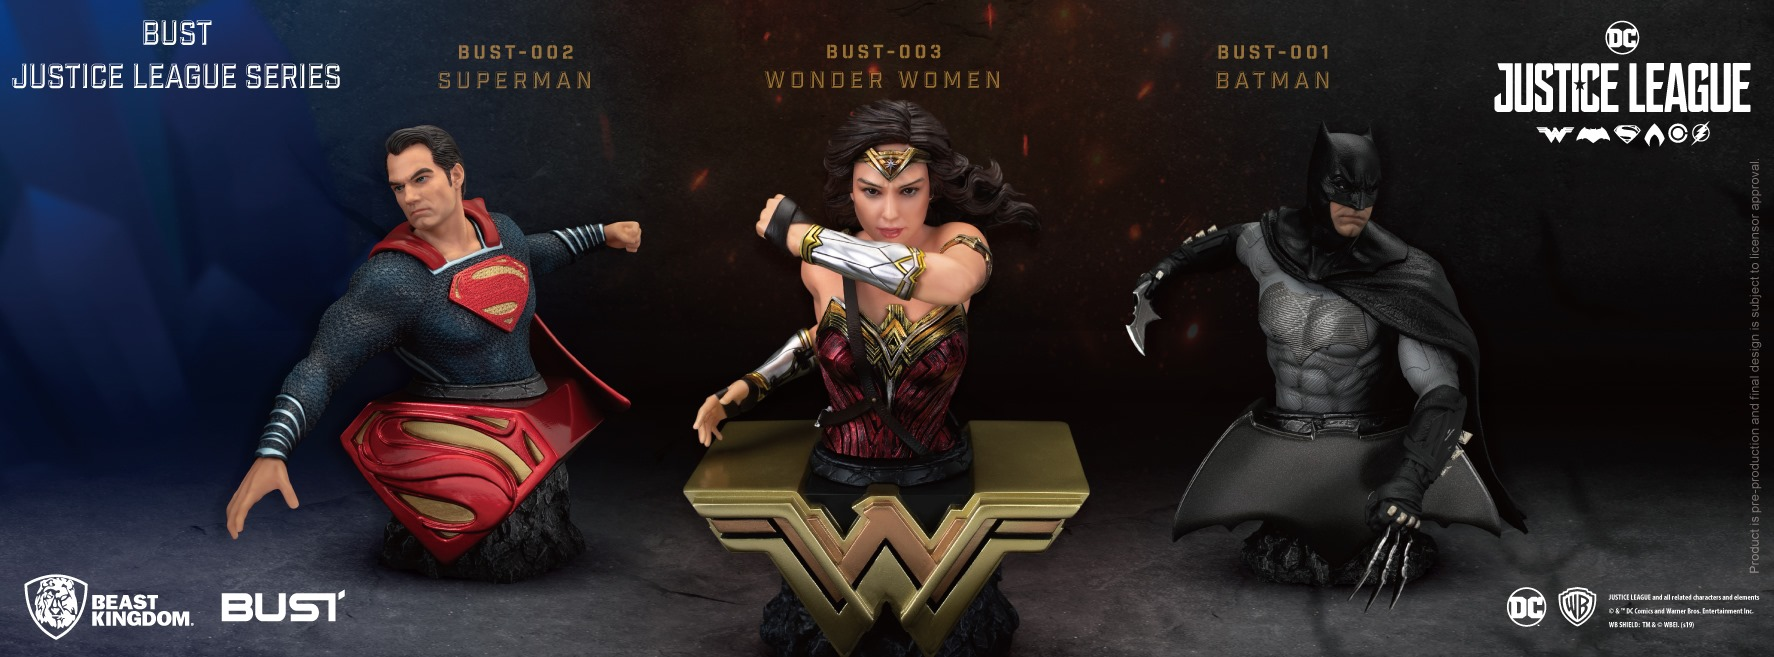 Beast Kingdom Justice League Busts 001